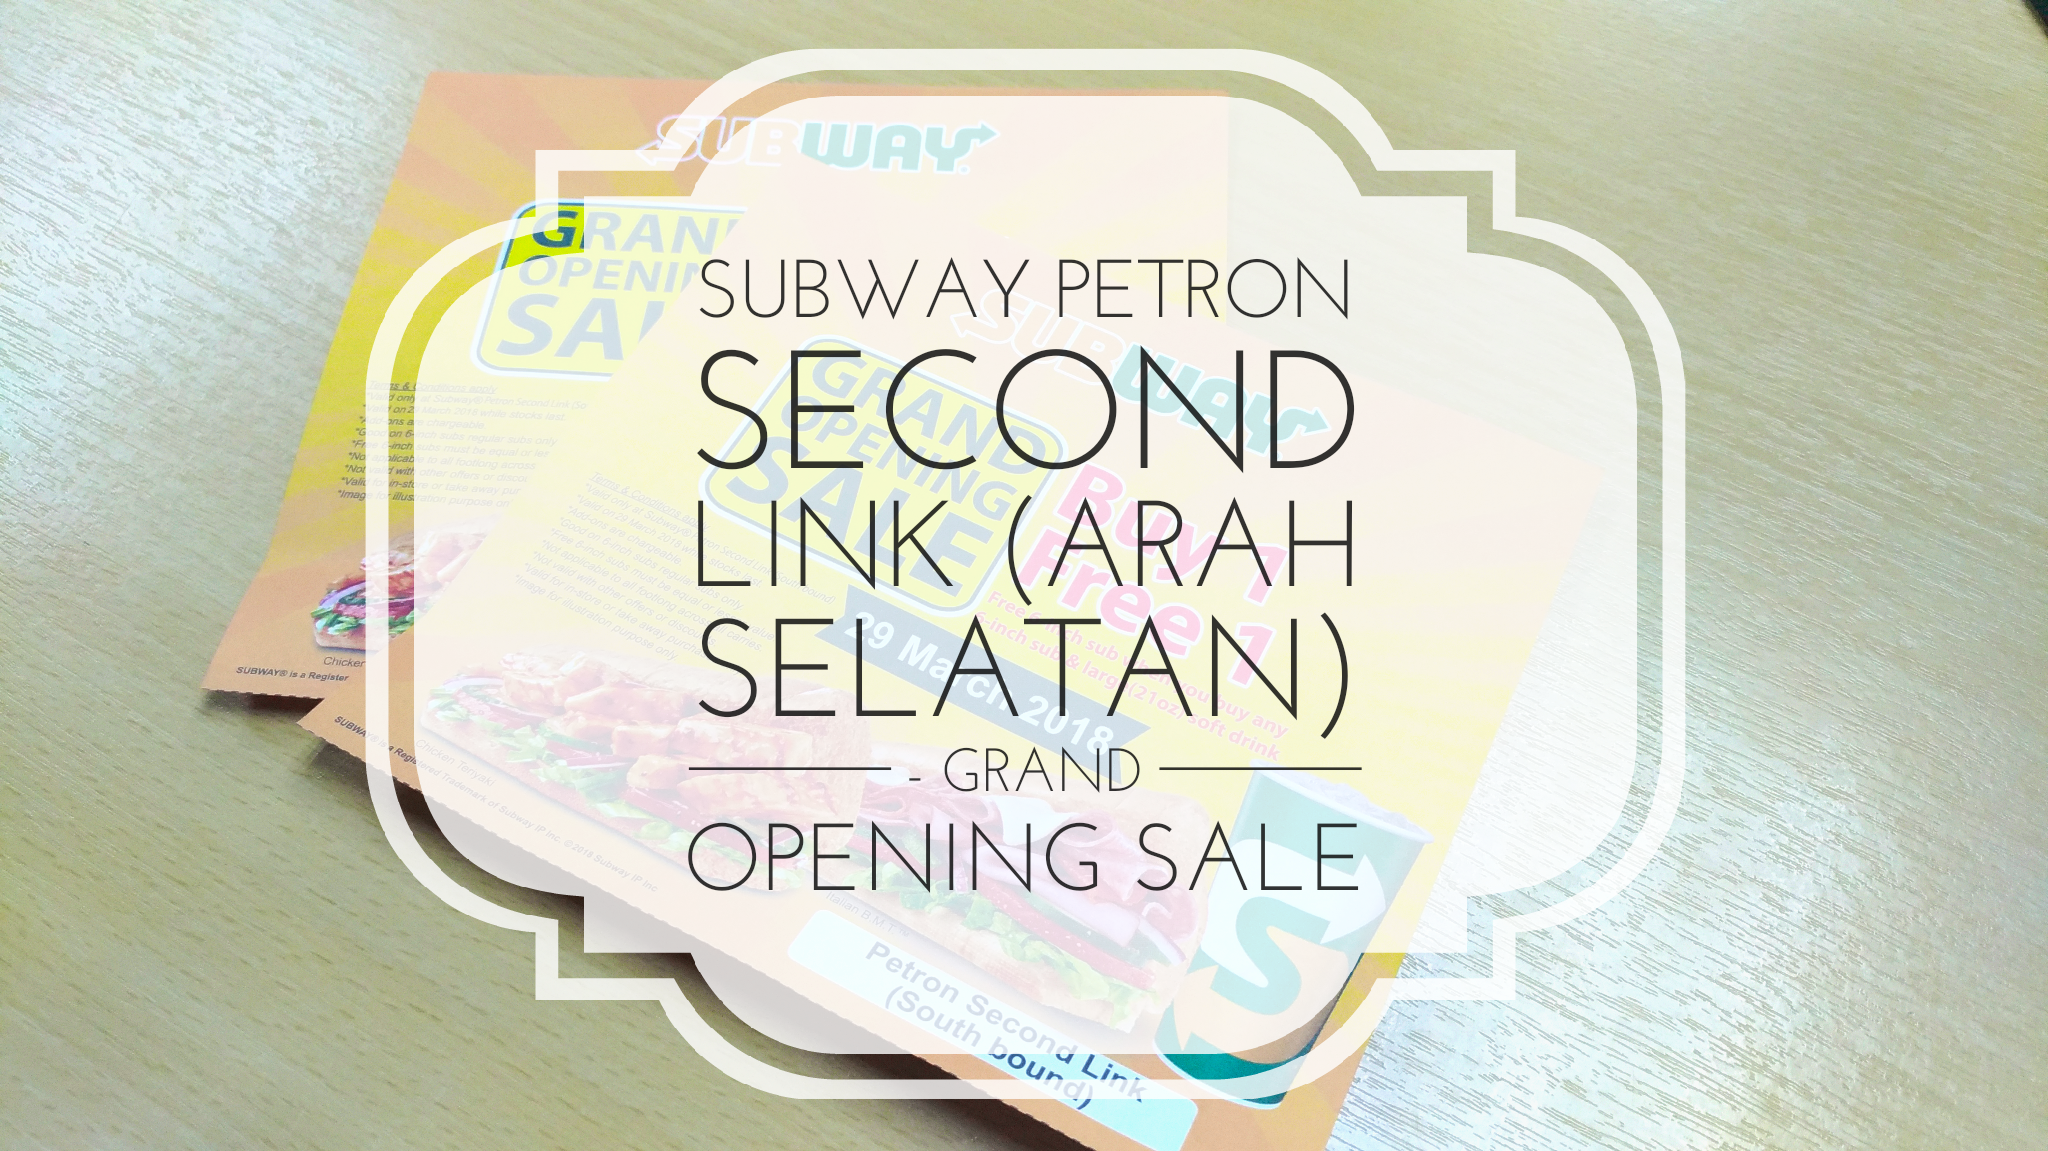 SUBWAY Petron Second Link (Arah Selatan) – Grand Opening Sale 29 March 2018